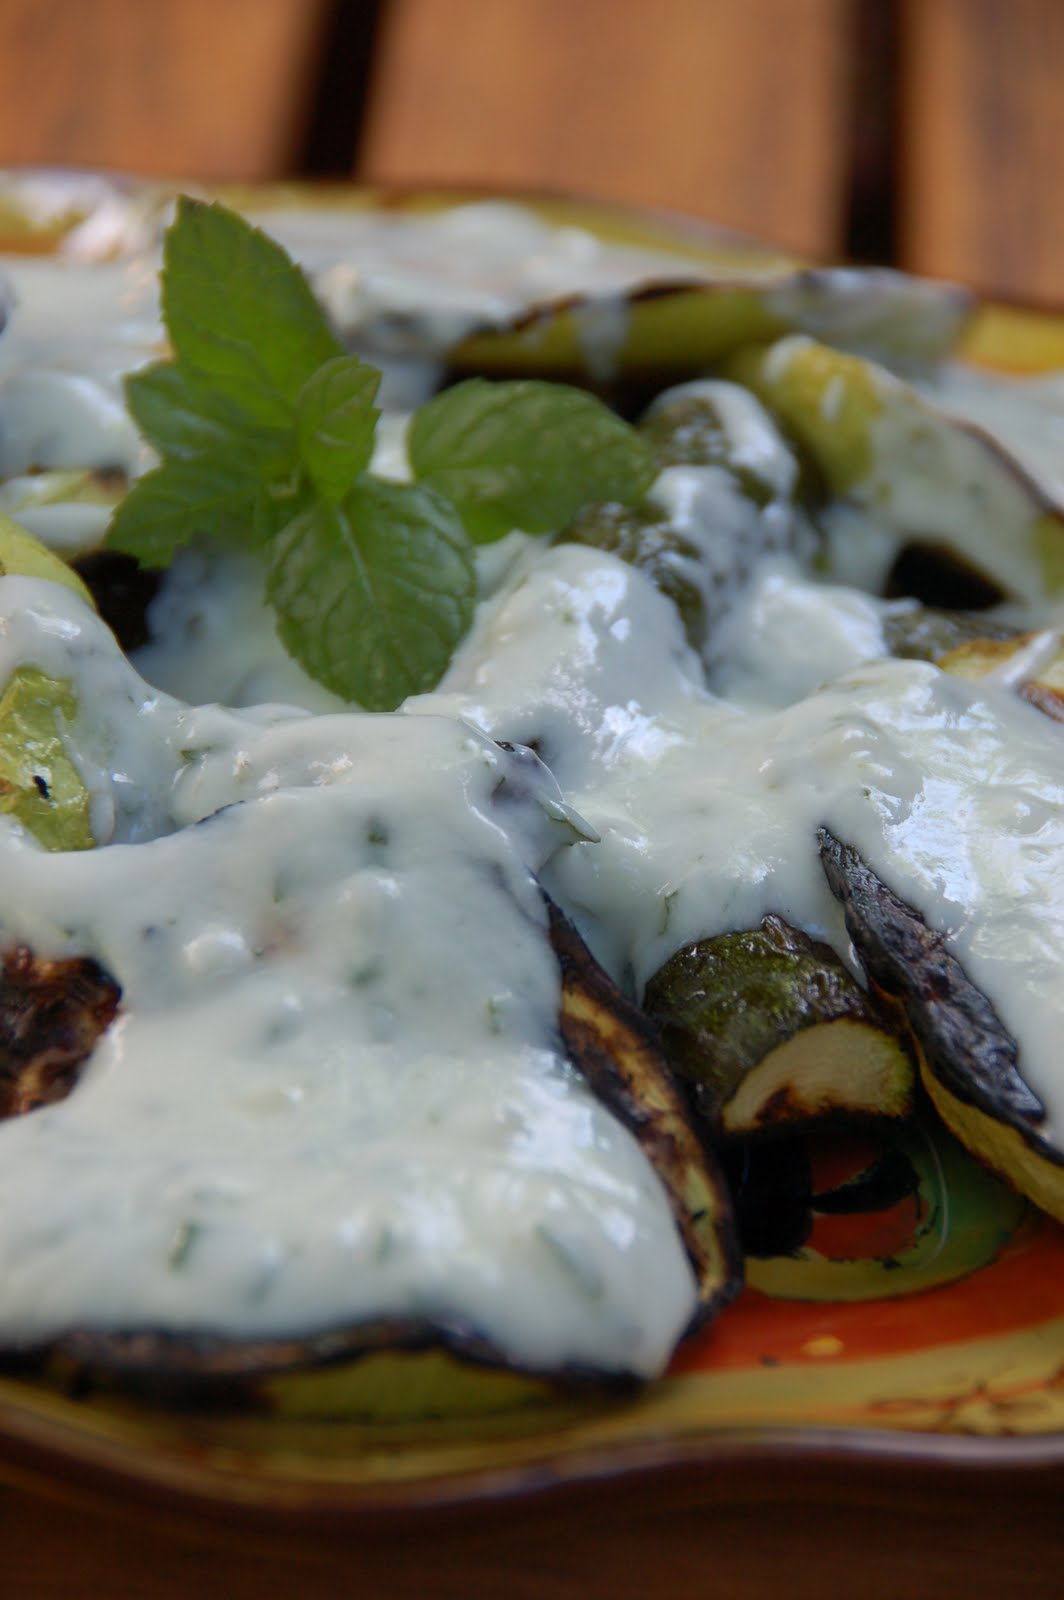 Guinnah: Grilled Squash with garlicky mint yogurt sauce